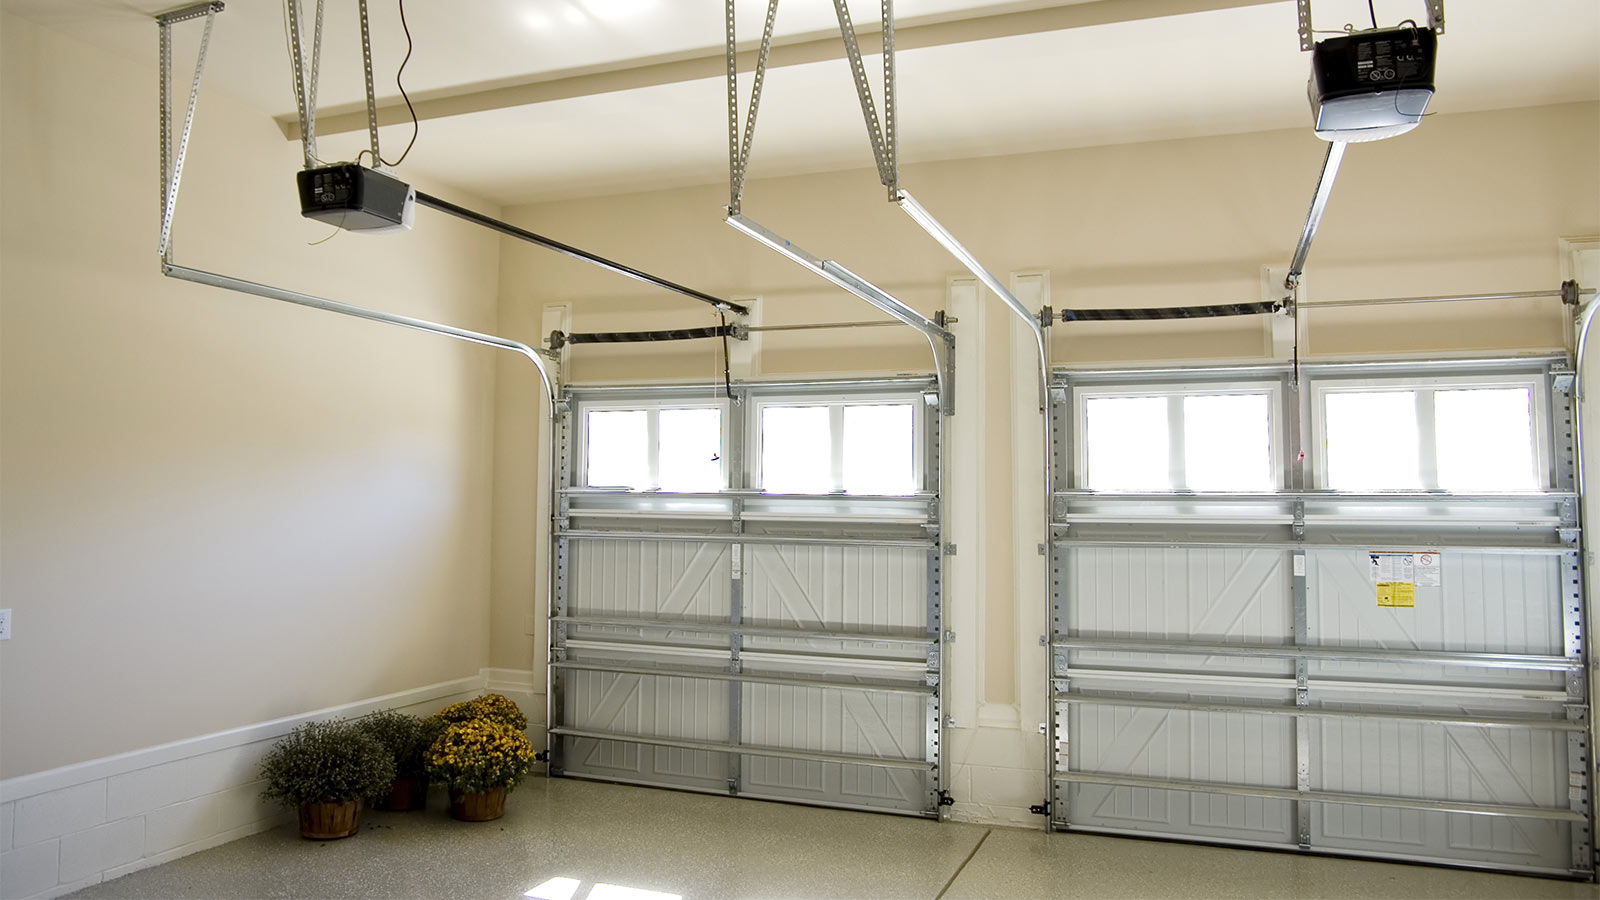 Sectional Garage Doors from Steel Security Doors Billericay suppliers.